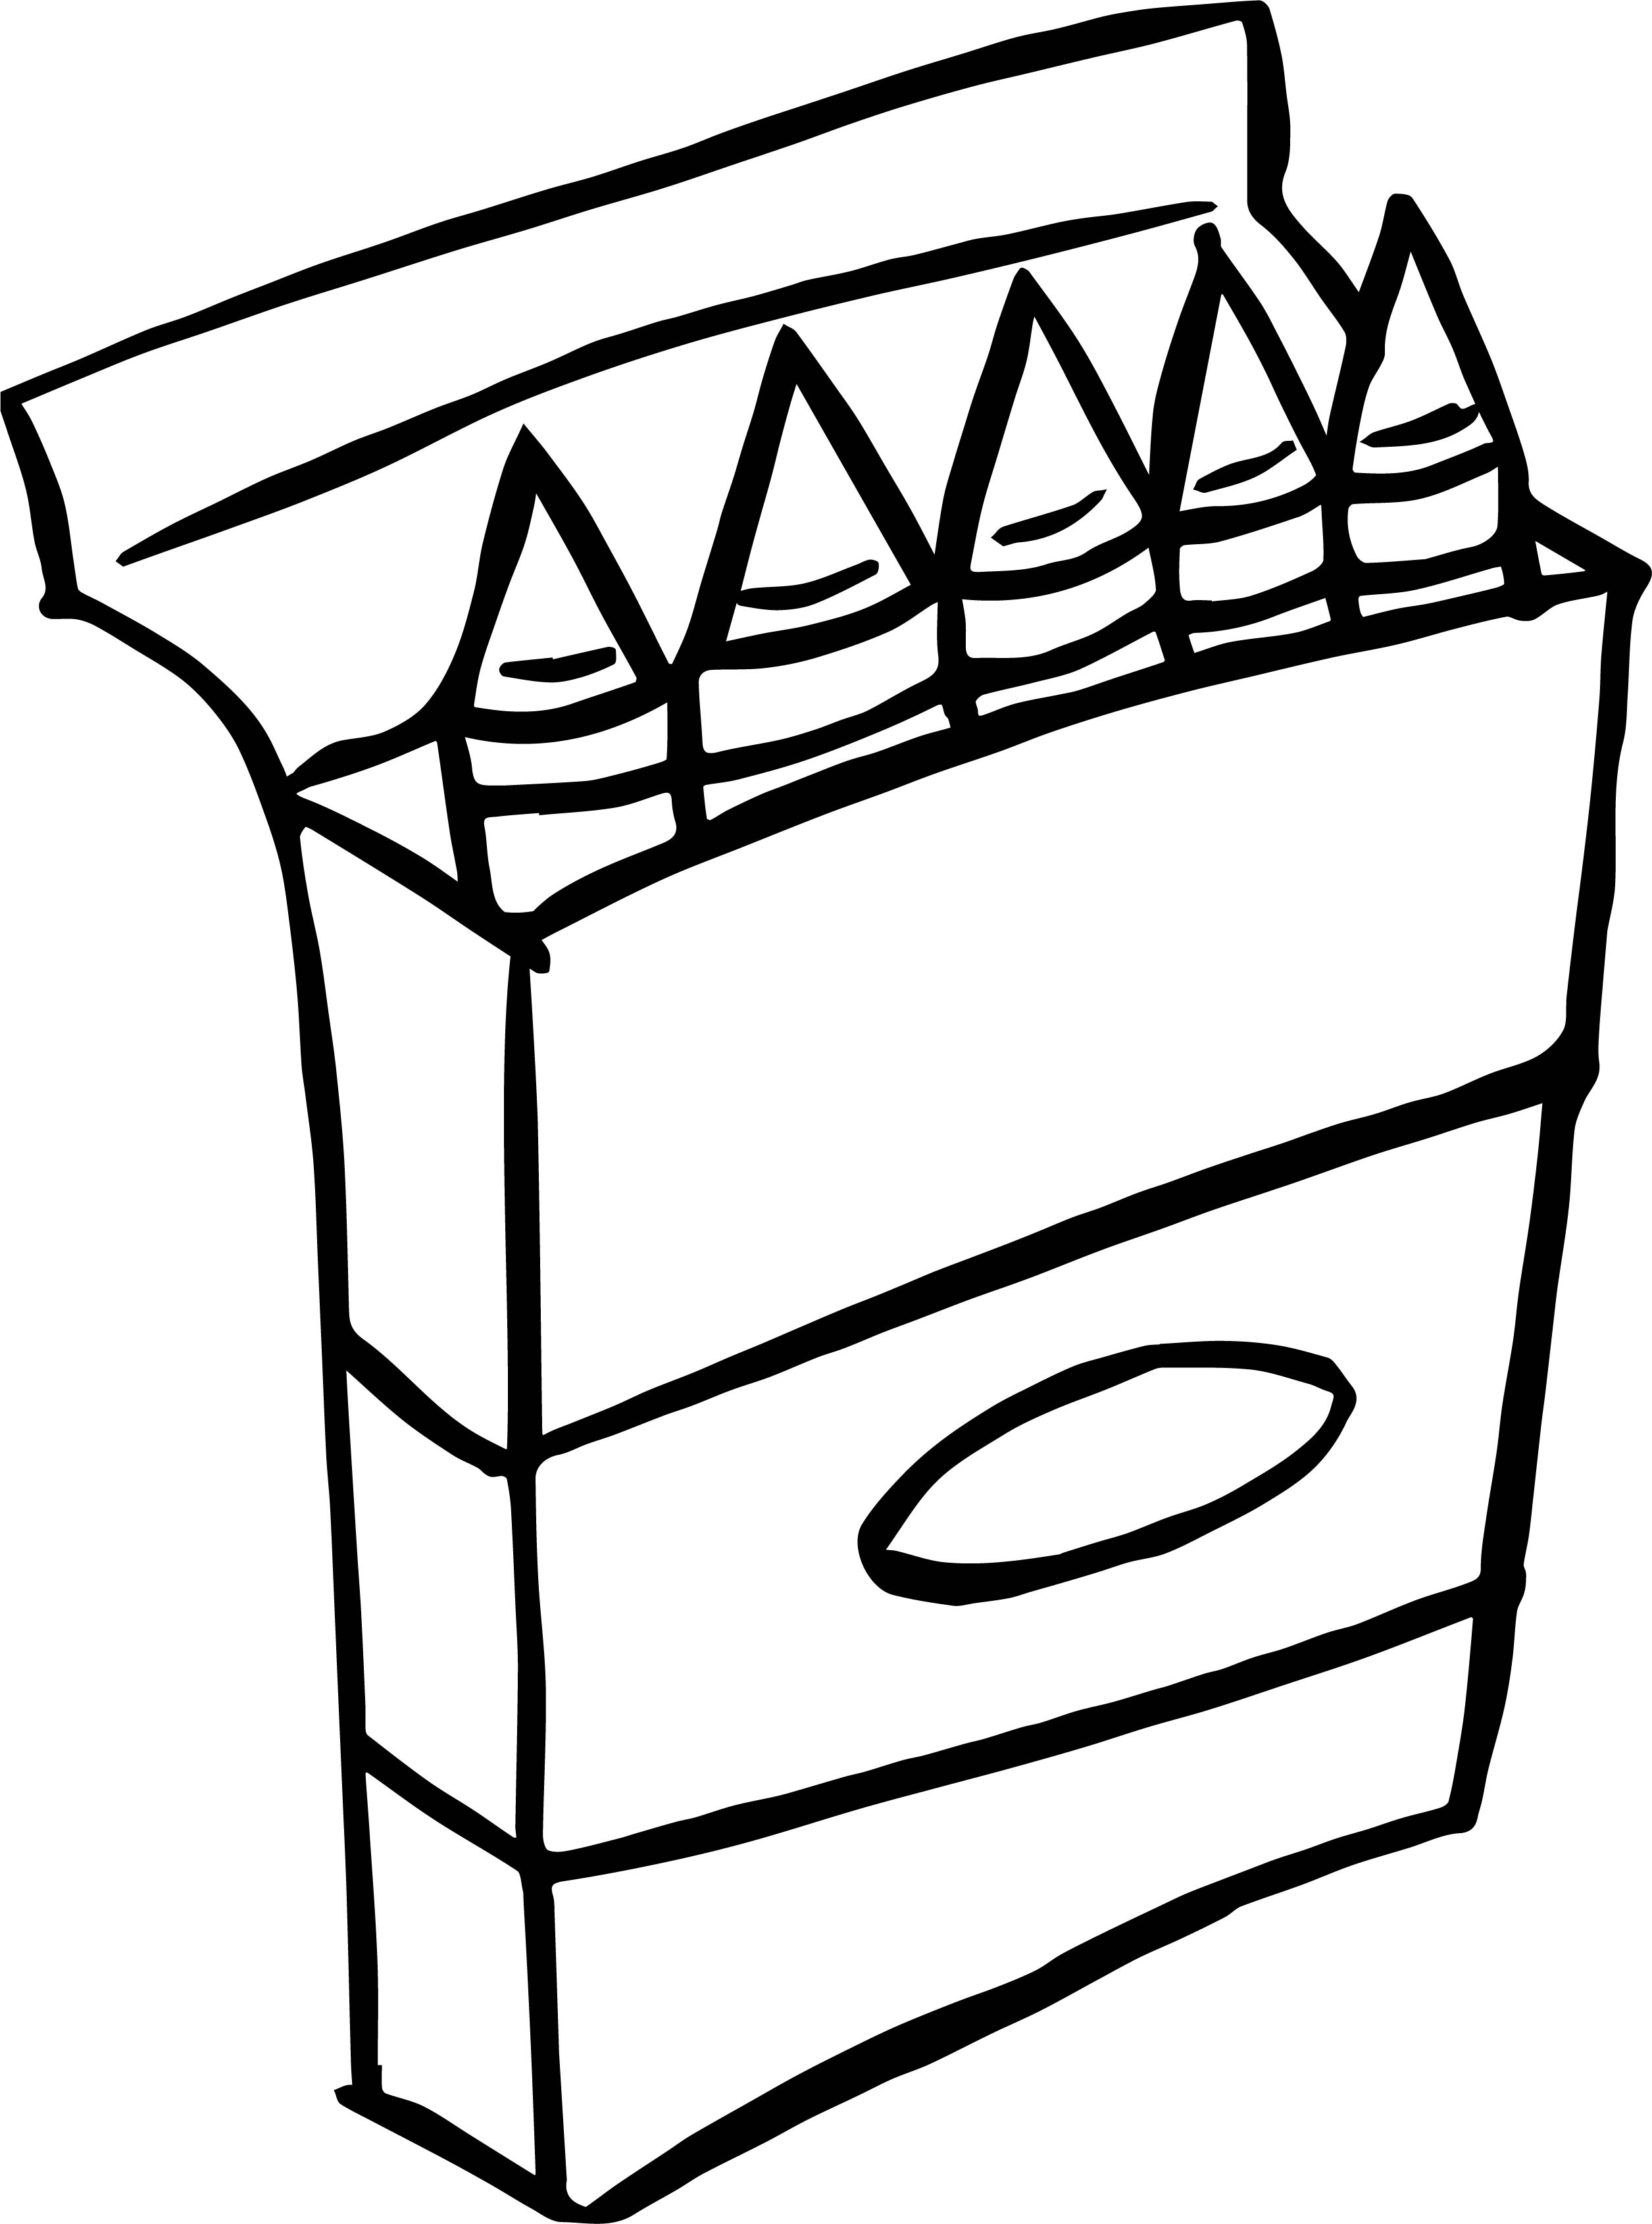 crayon coloring art crayons clipart black and white free download on clipartmag crayon coloring art